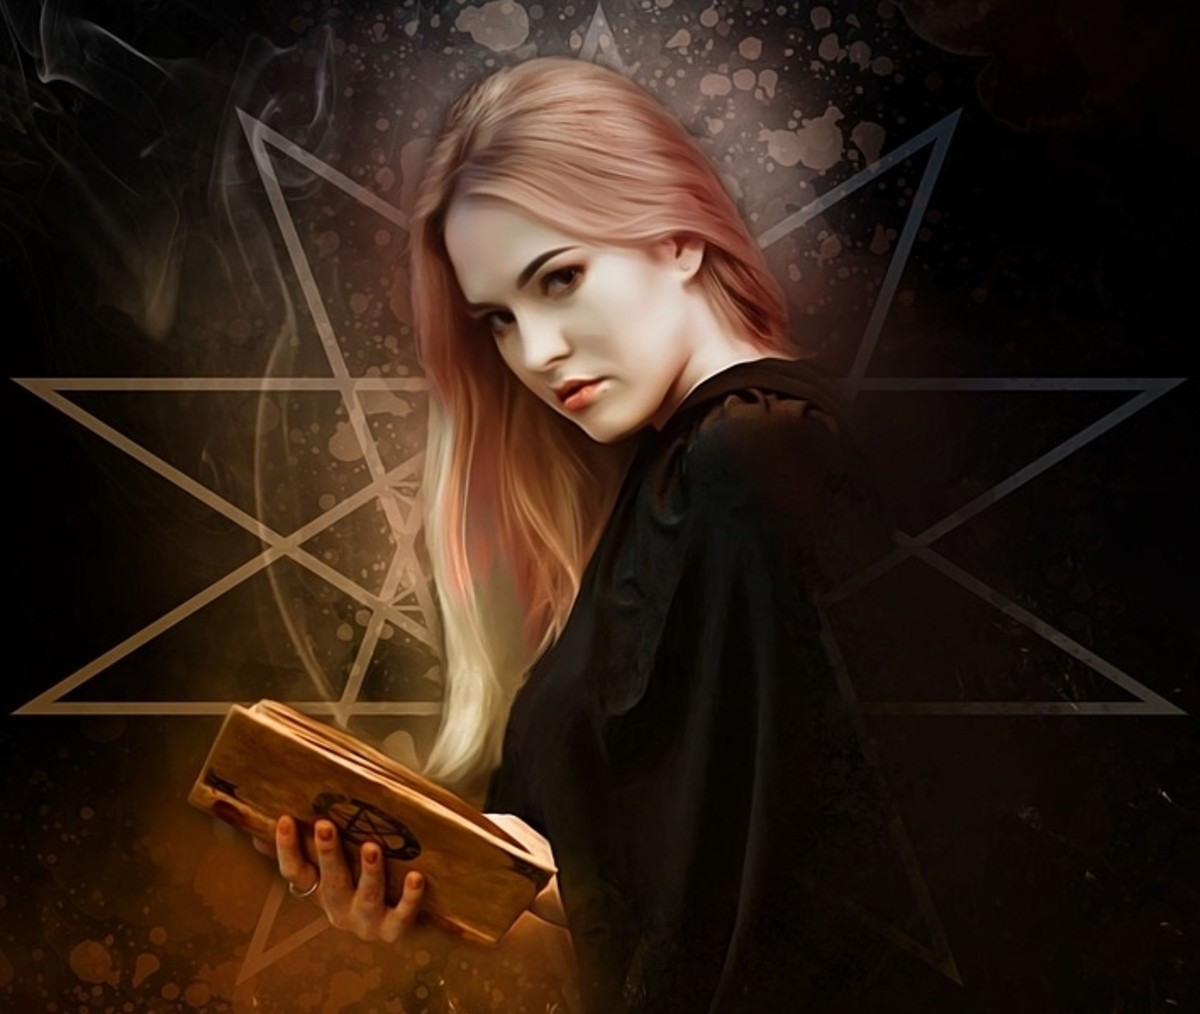 Magick and Black Magick; Are They Good, Bad, or In Between?